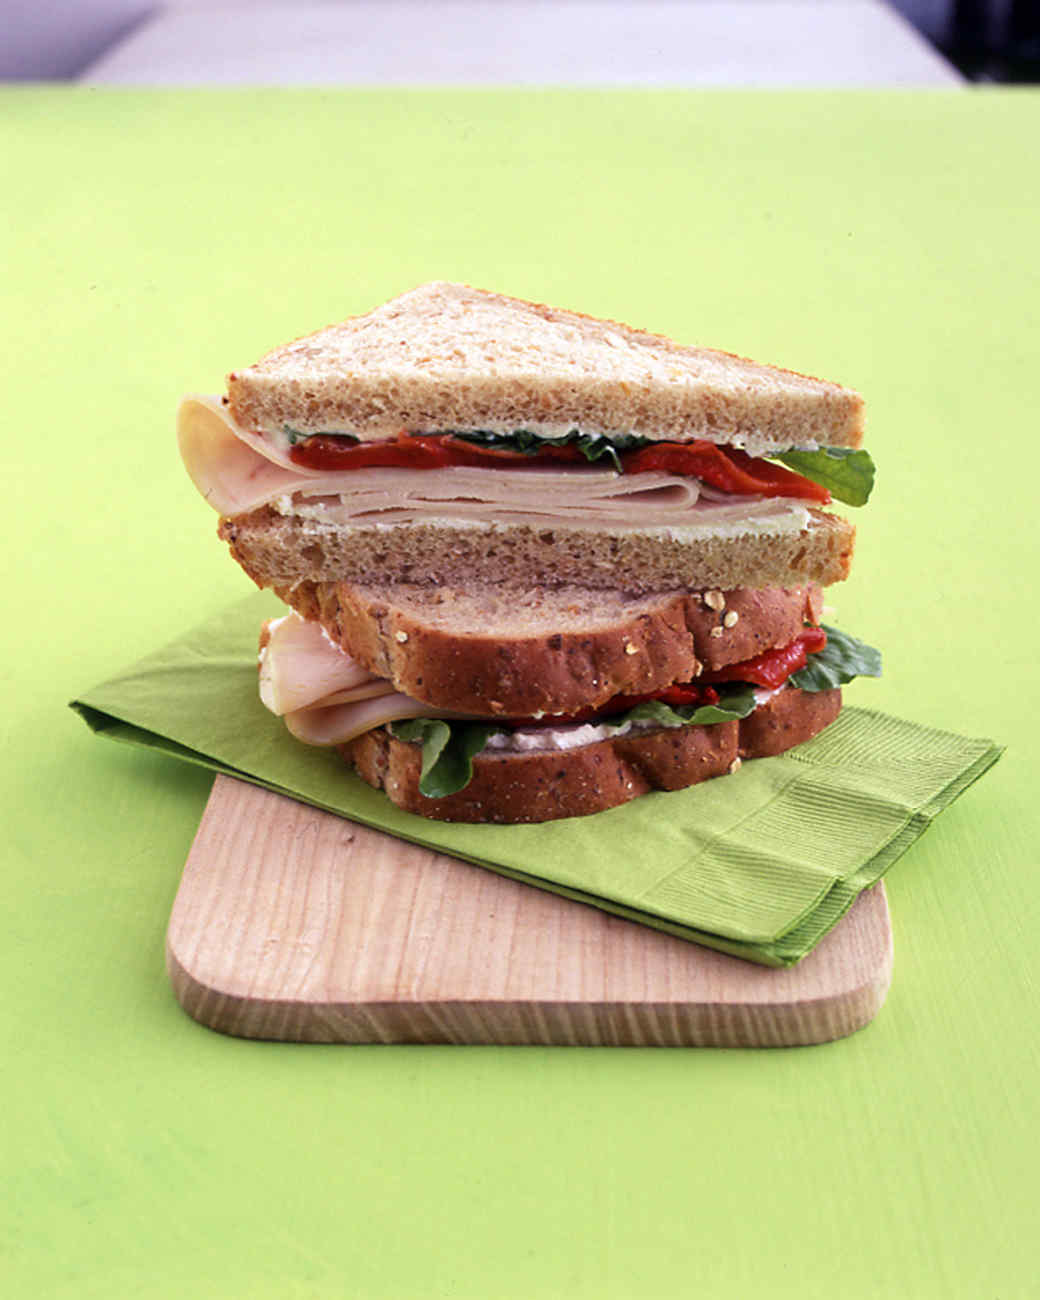 Turkey Sandwich with Ricotta, Red Peppers, and Arugula